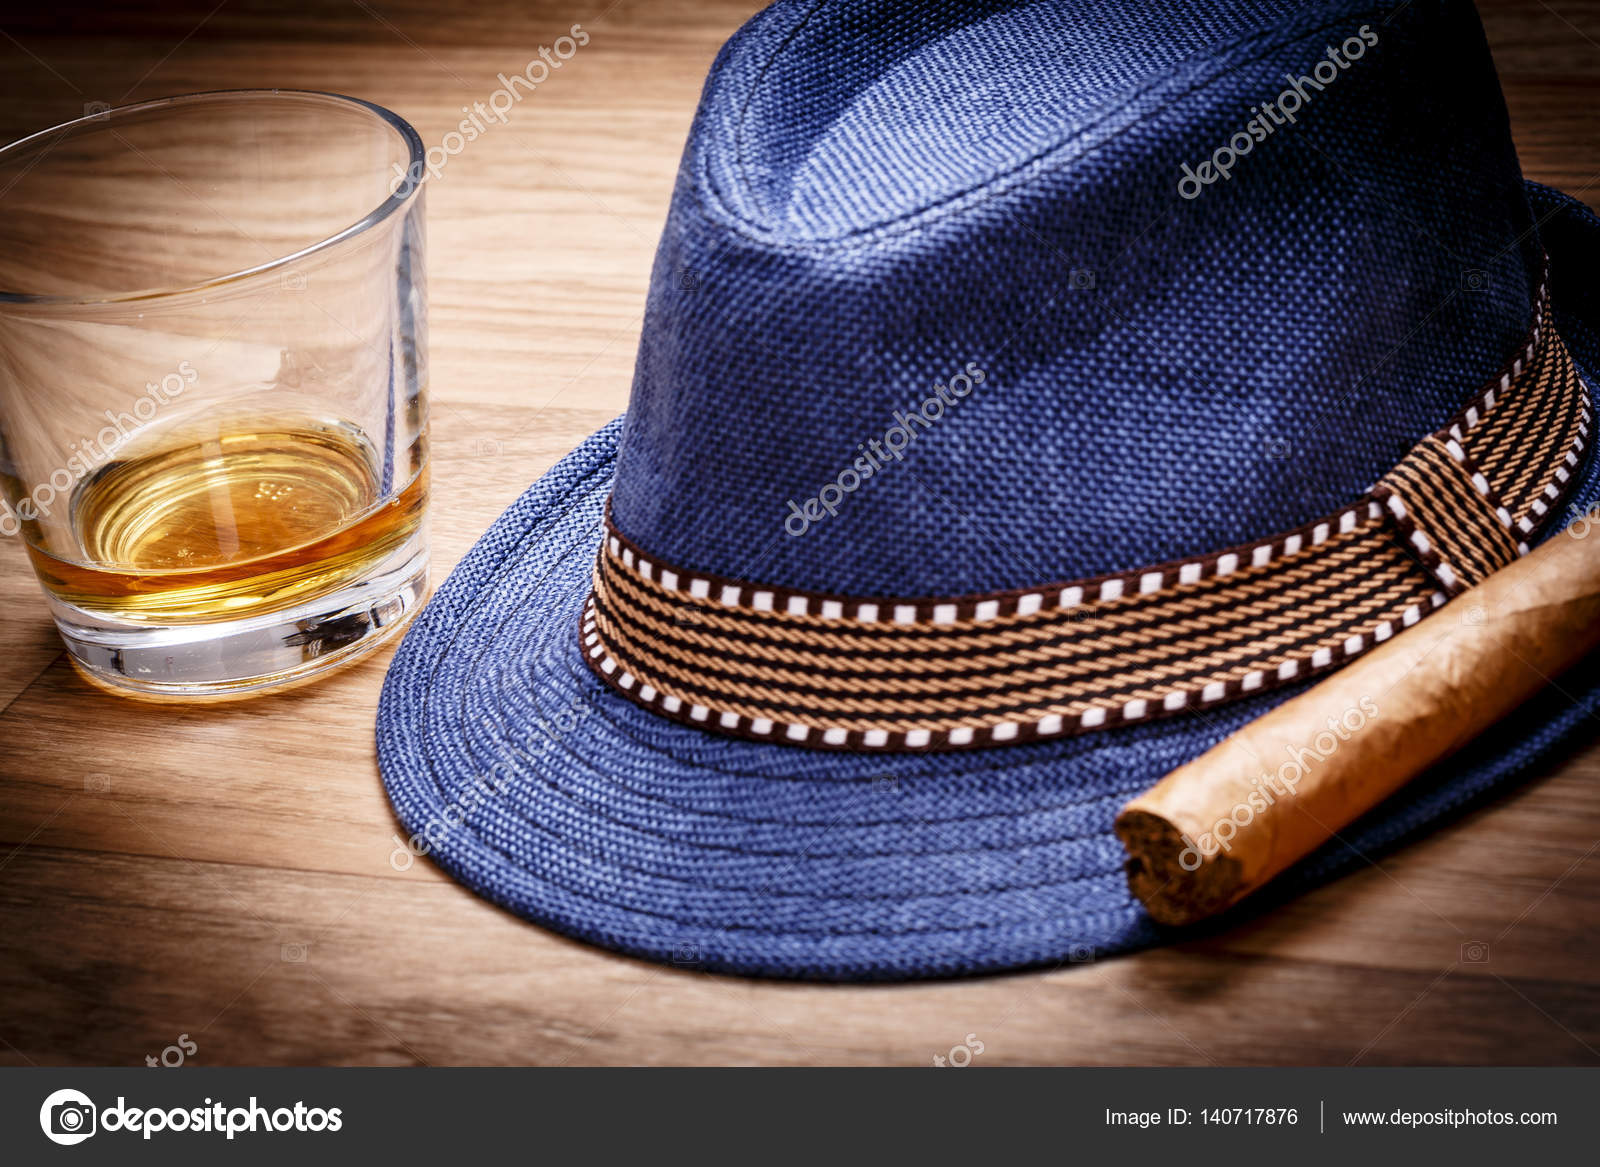 7615fc9444061 Blue hat with cigar and expensive drink of whisky or rum on wooden floor–  stock image